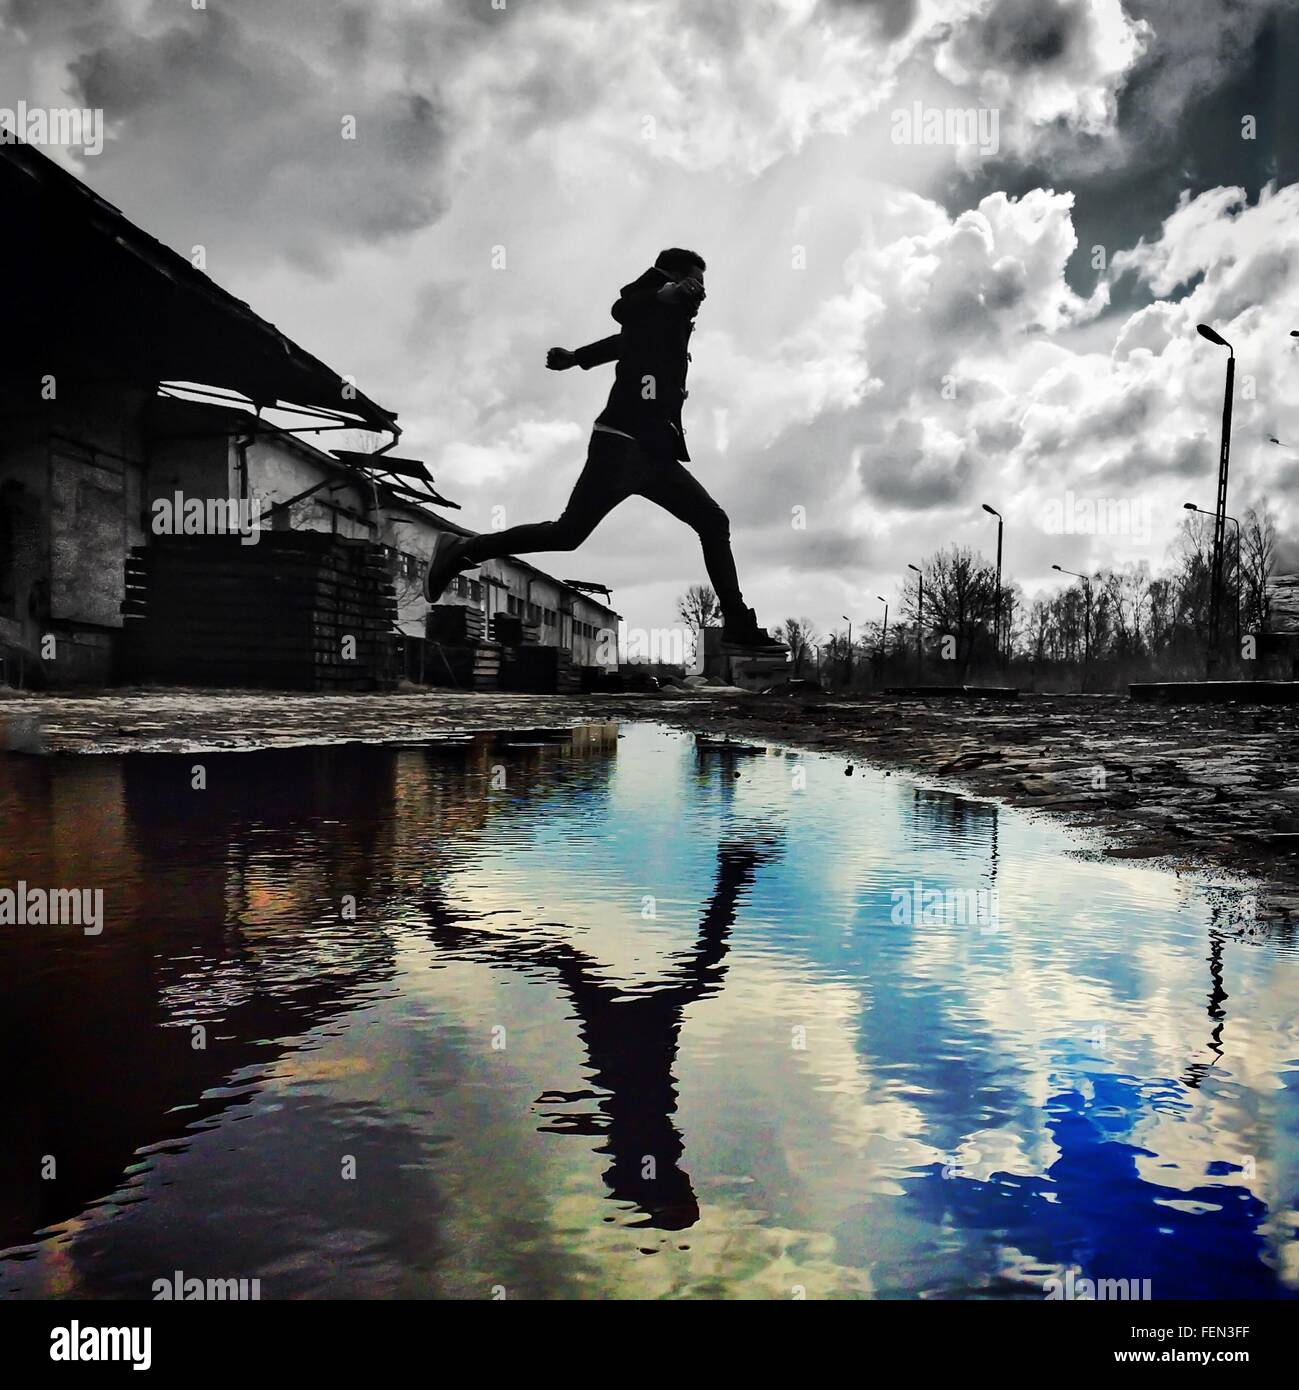 Man Jumping Over Stream Photo Stock